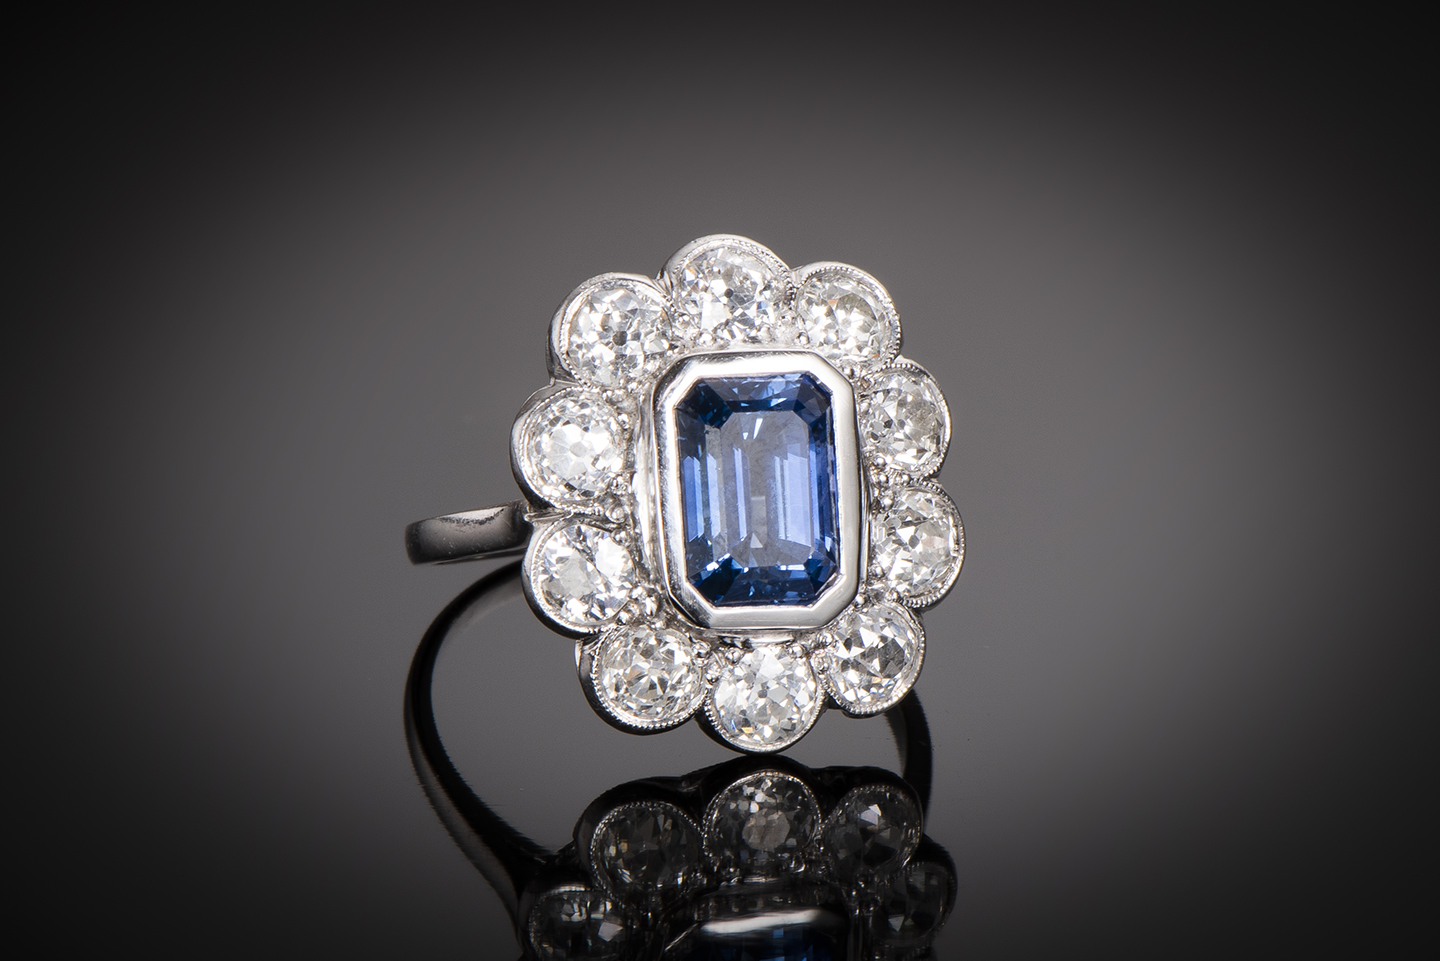 Bague Art Déco saphir bleu intense (3,50 carats, certificat CGL) diamants (1,80 carat)-1